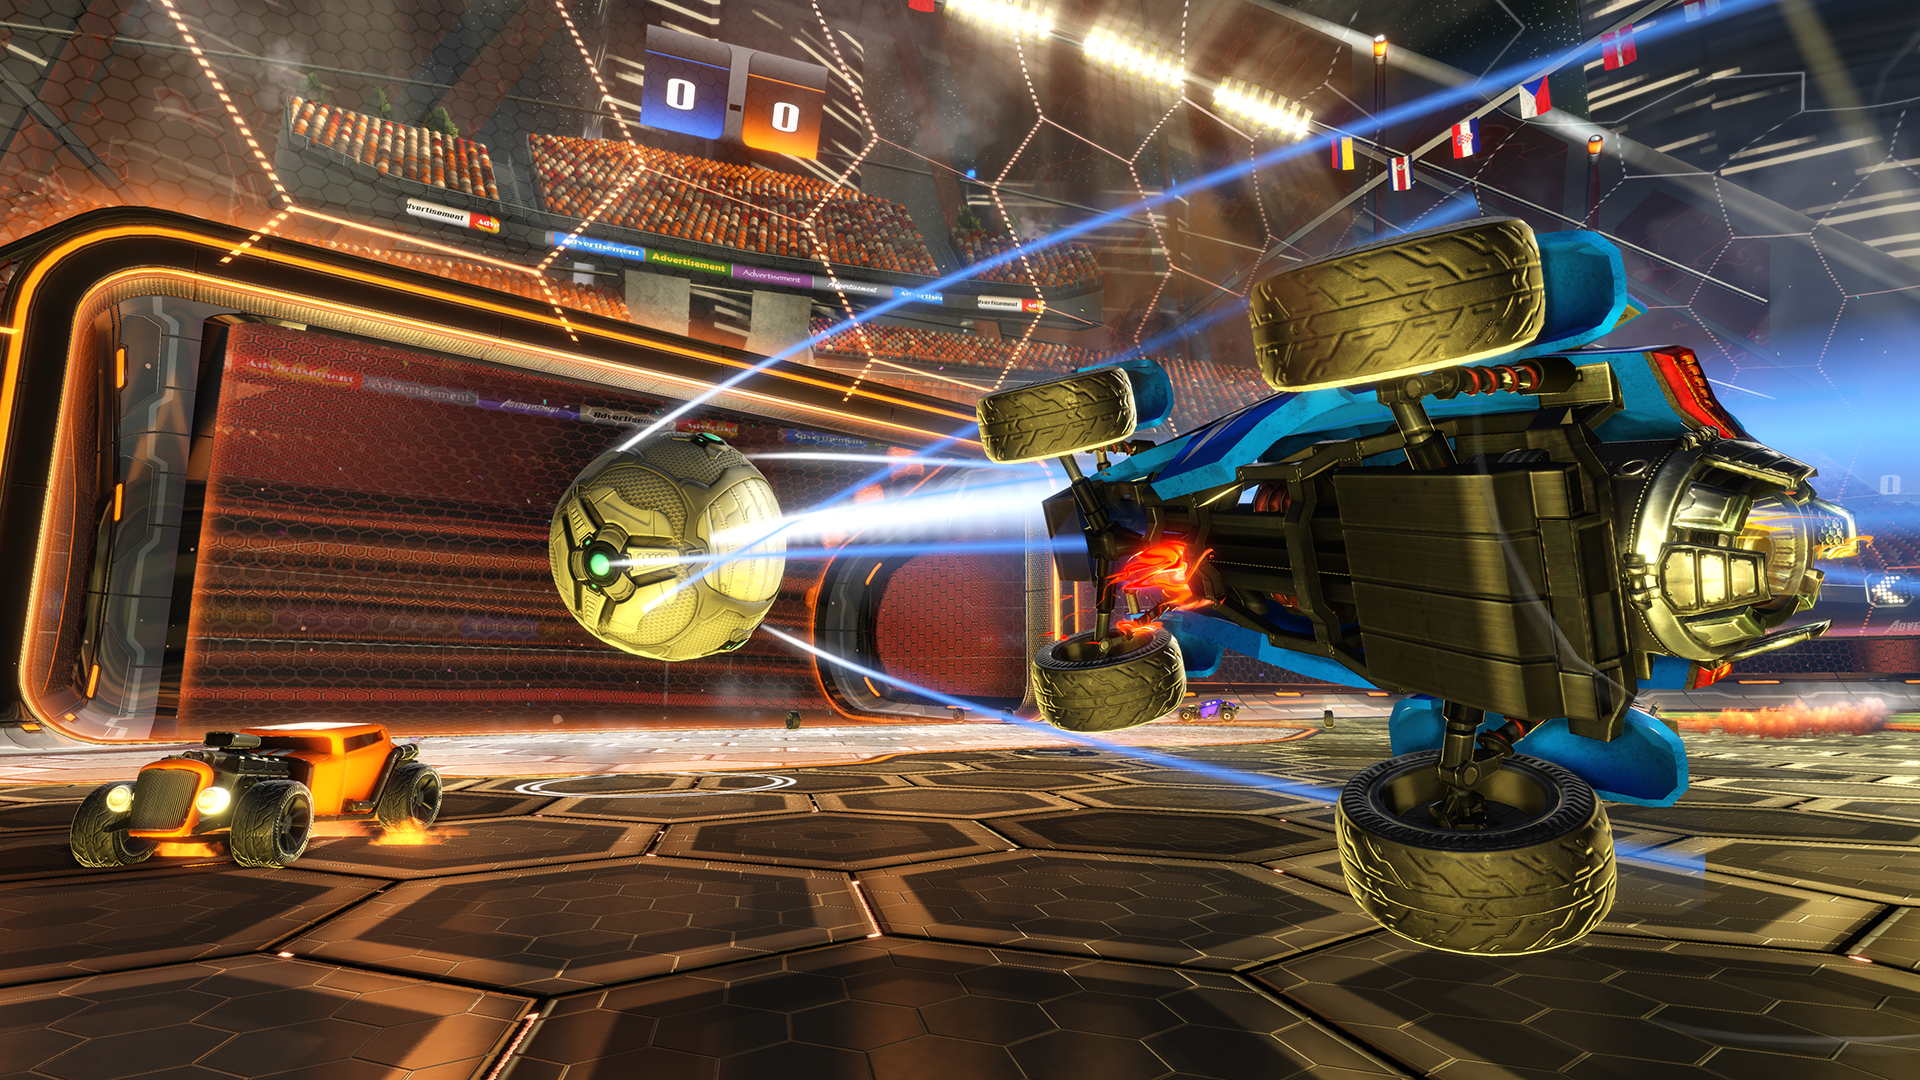 rocket-league-review.jpg